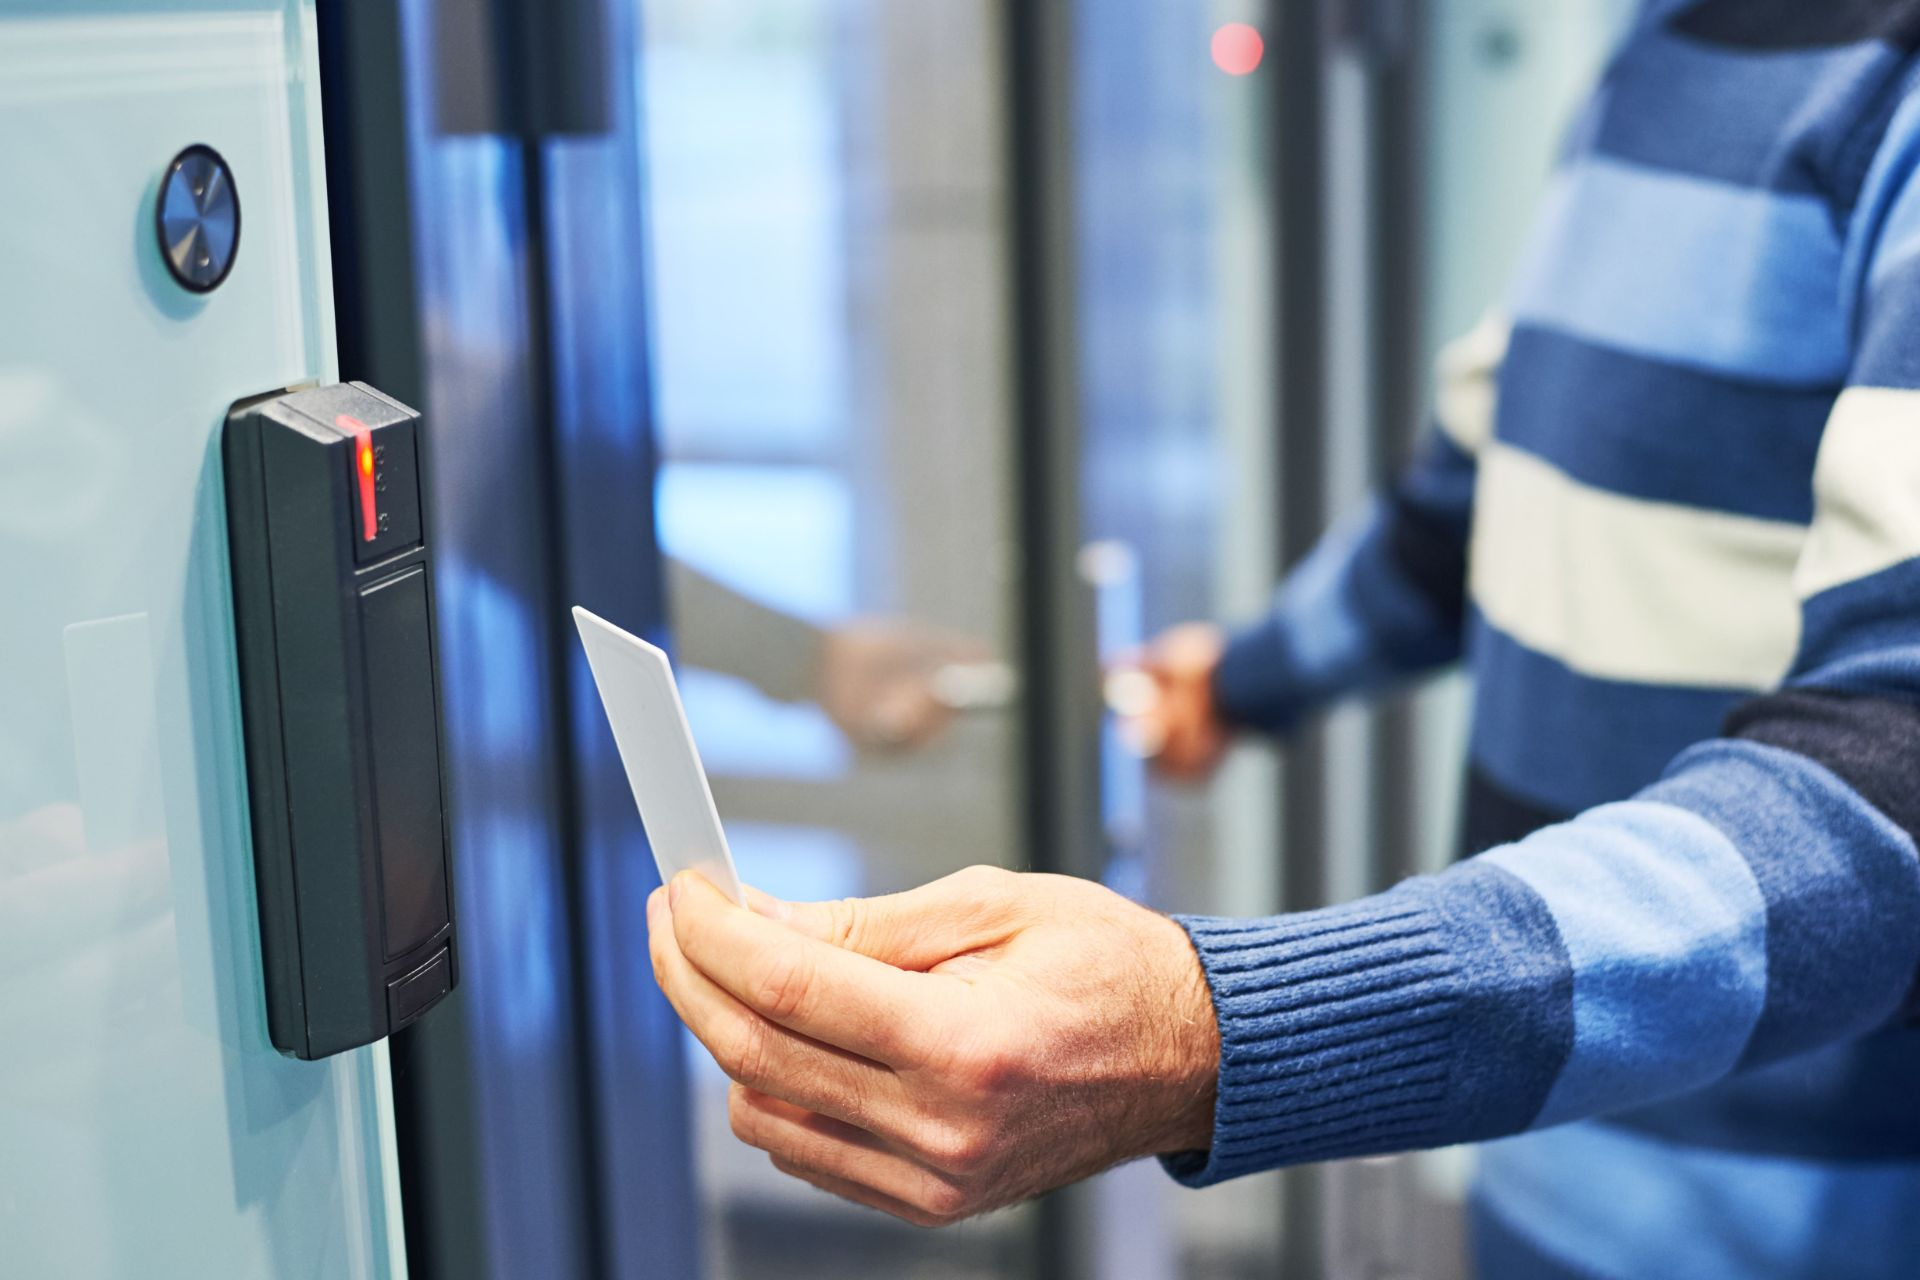 employee using access control card